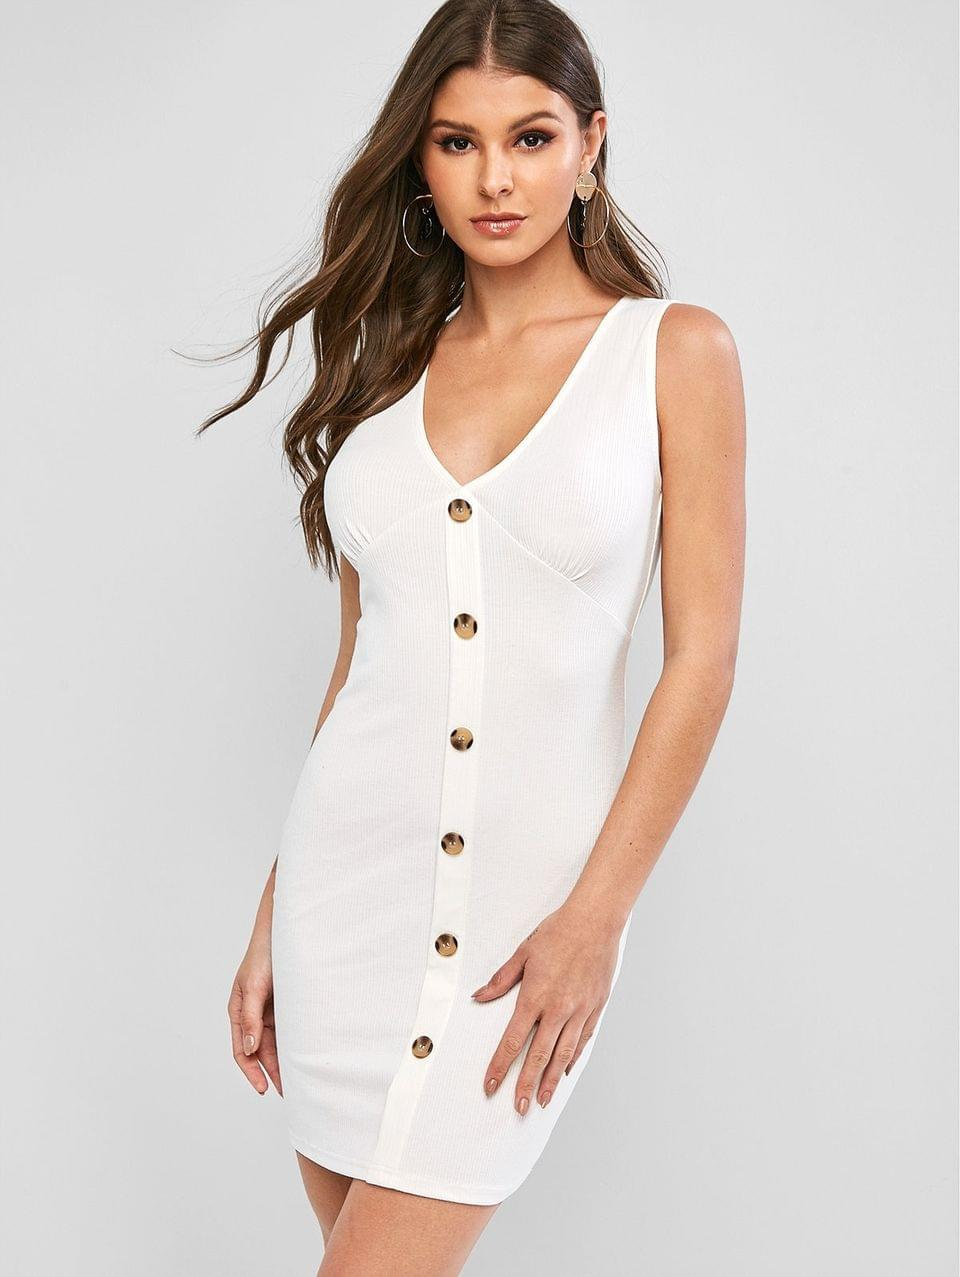 Women's Plunging Button Embellished Sleeveless Bodycon Dress - White L